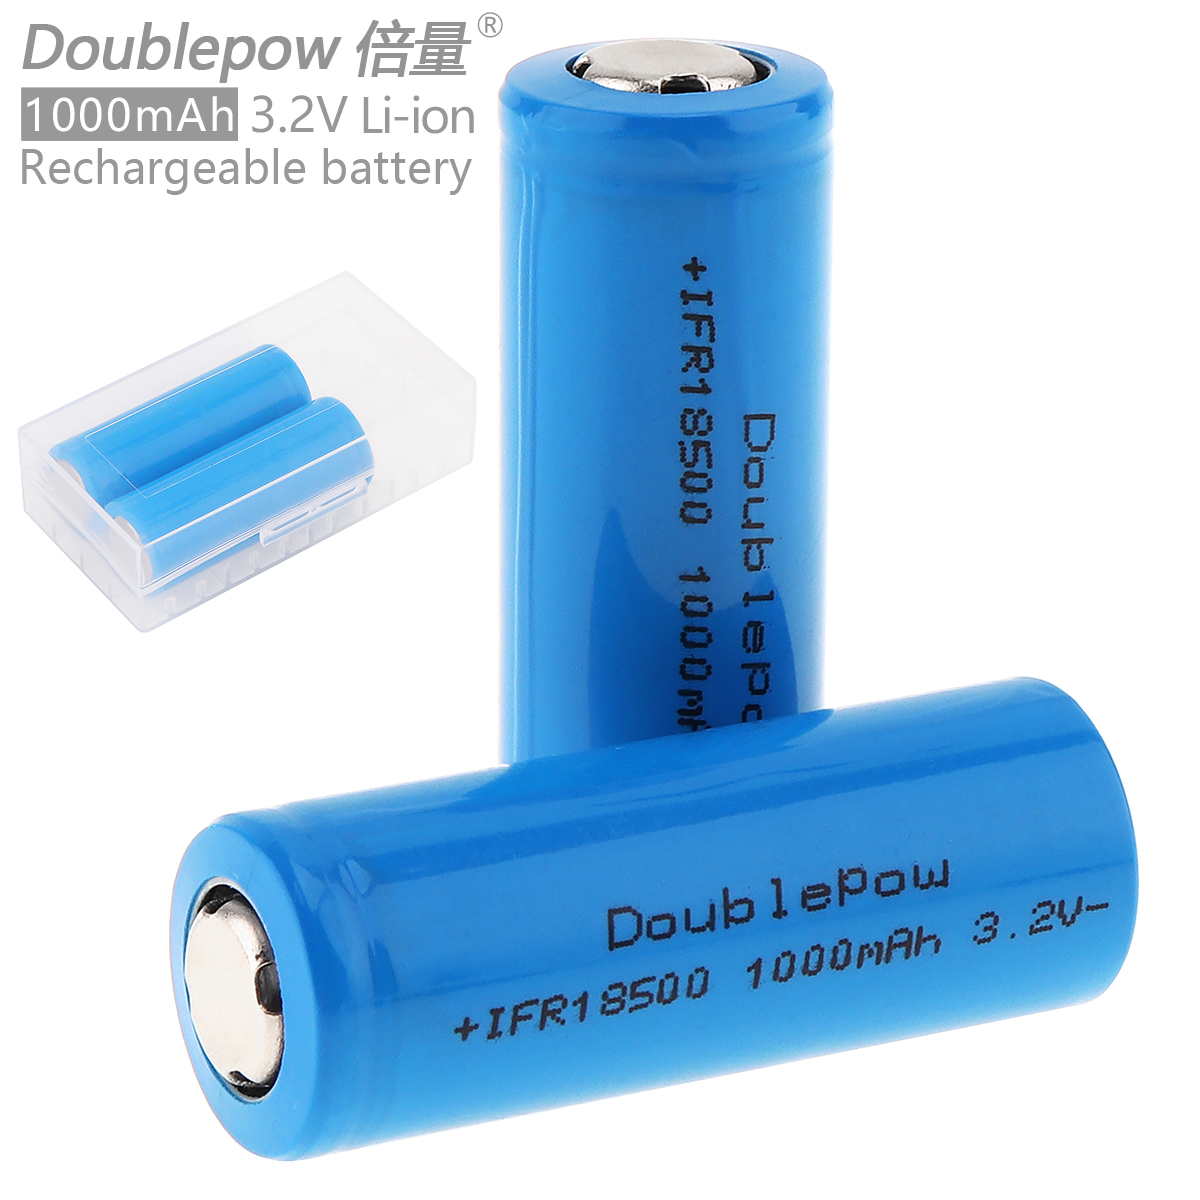 Doublepow 2pcs 18500 1000mAh 3.2V Li-ion Rechargeable Battery with Safety Relief Valve + Portable Battery Storage Box